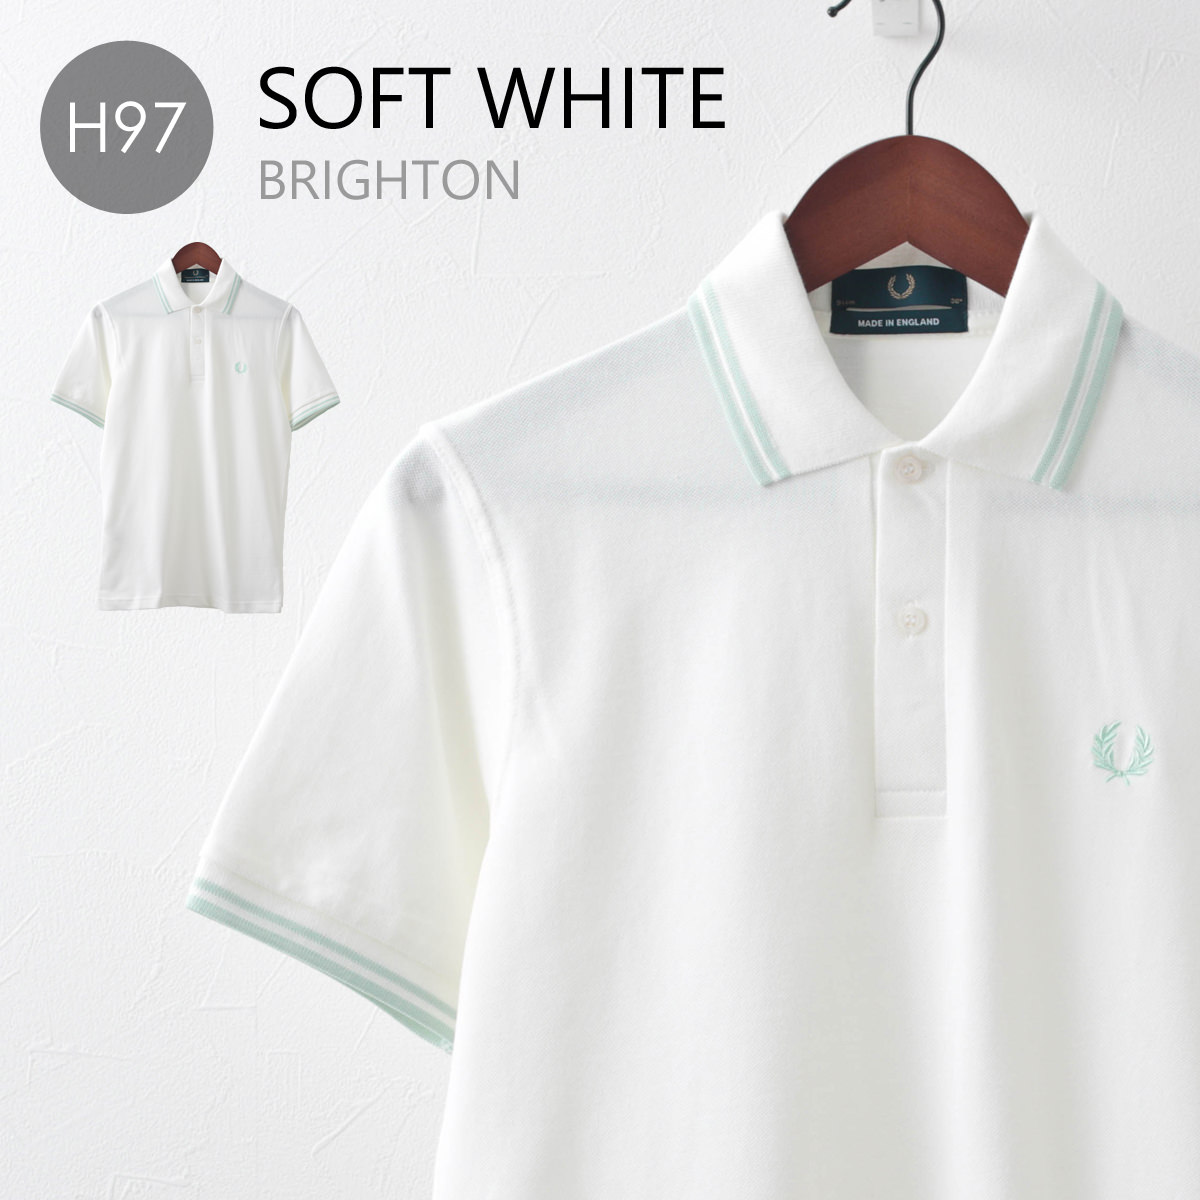 Fred Perry フレッドペリー メンズ ポロシャツ M12 新色 20色 メンズ MADE IN ENGLAND 正規販売店